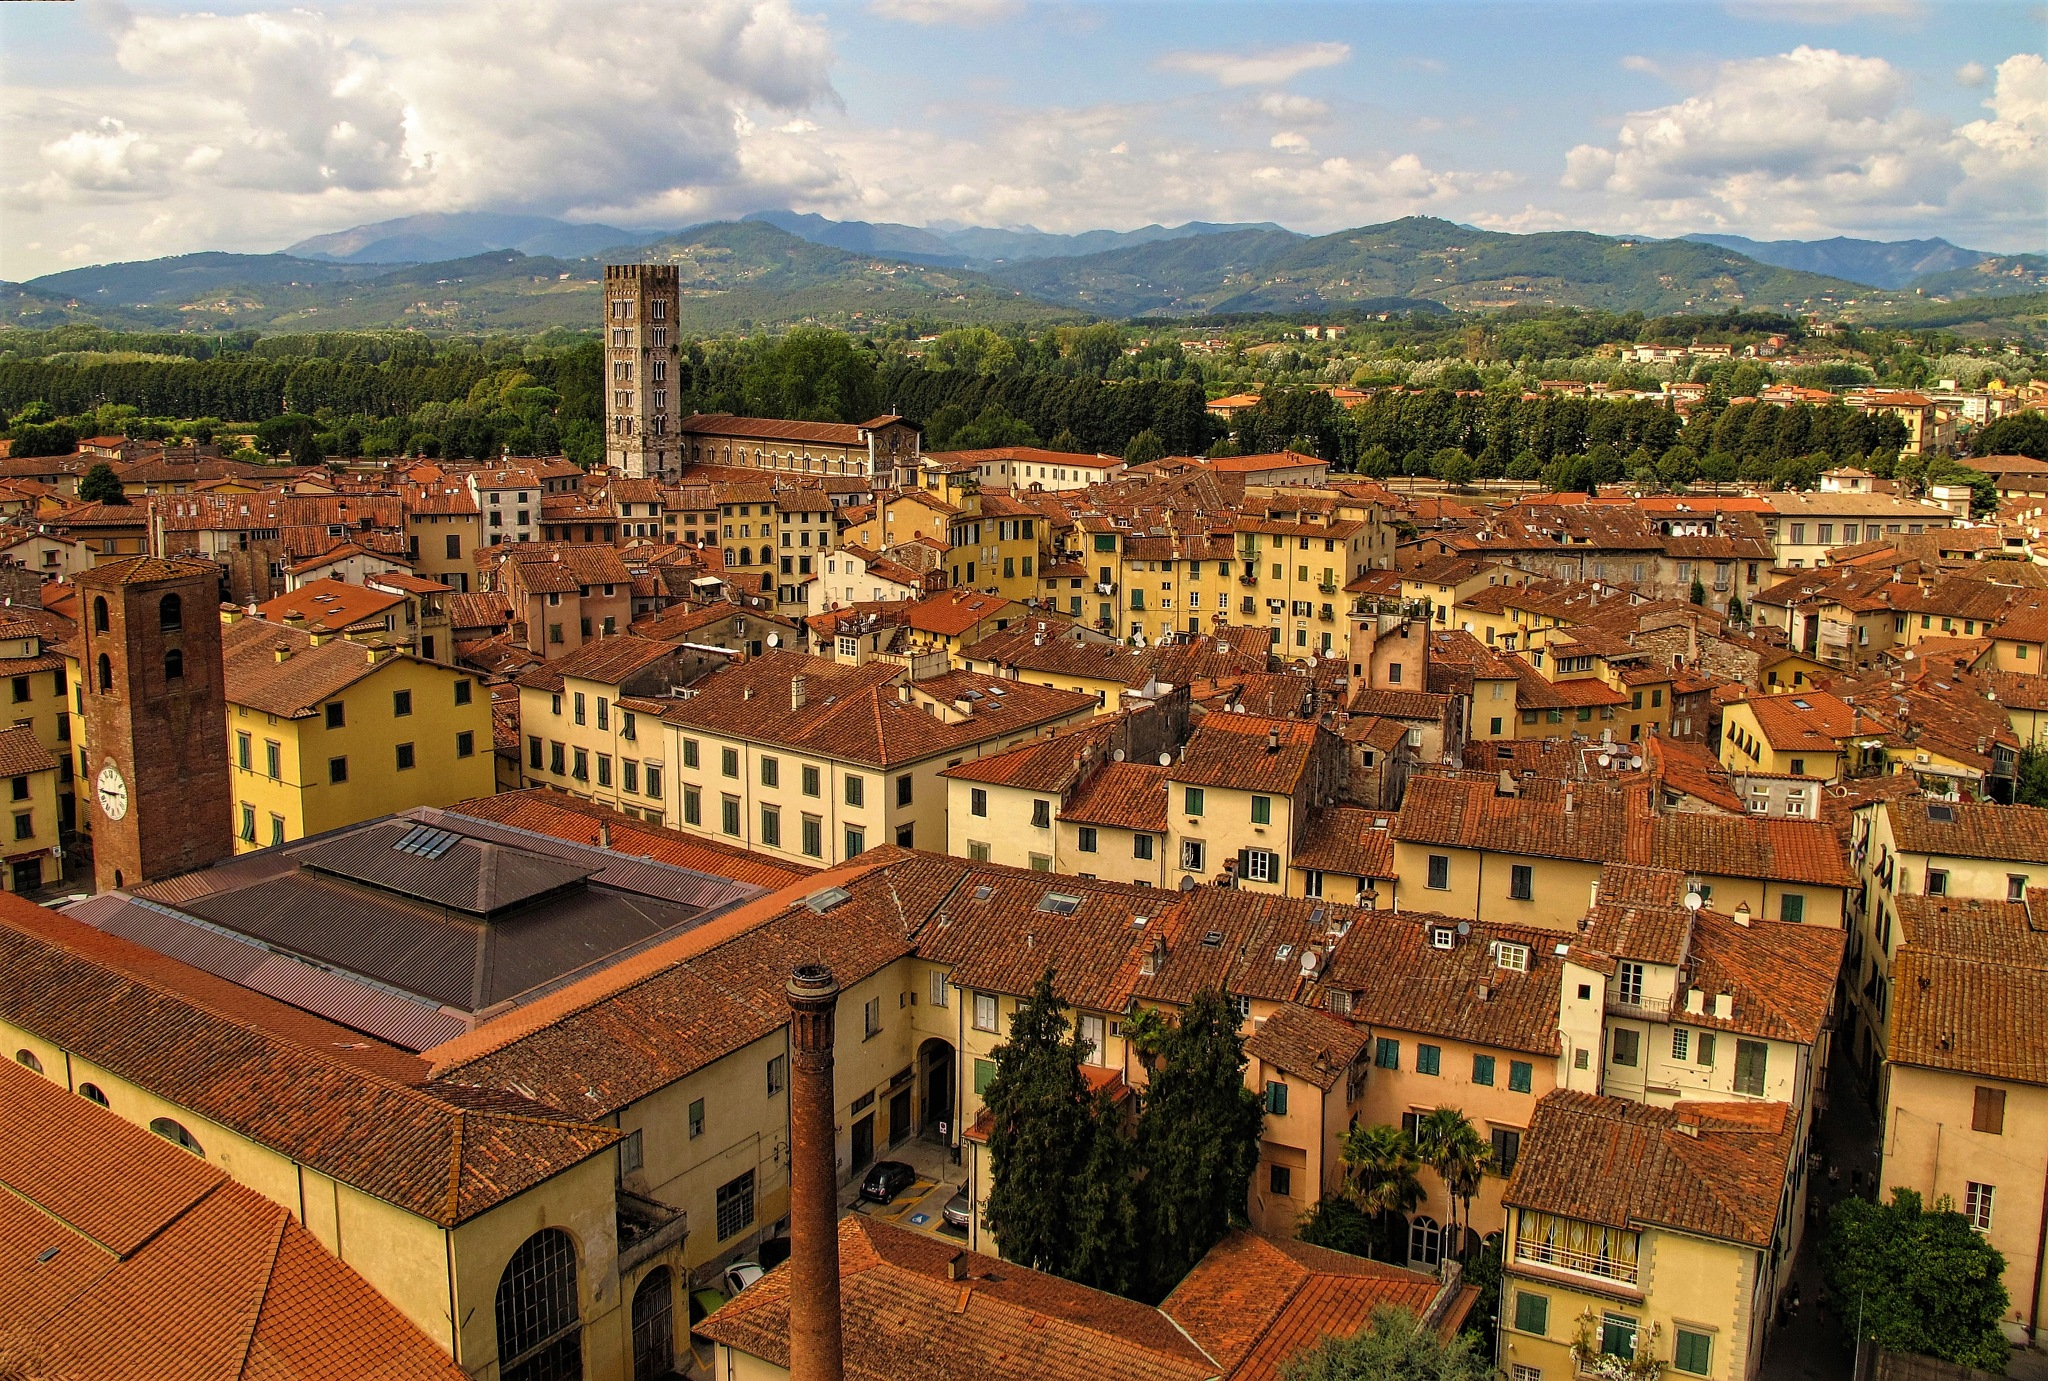 Lucca by Francesco Abate